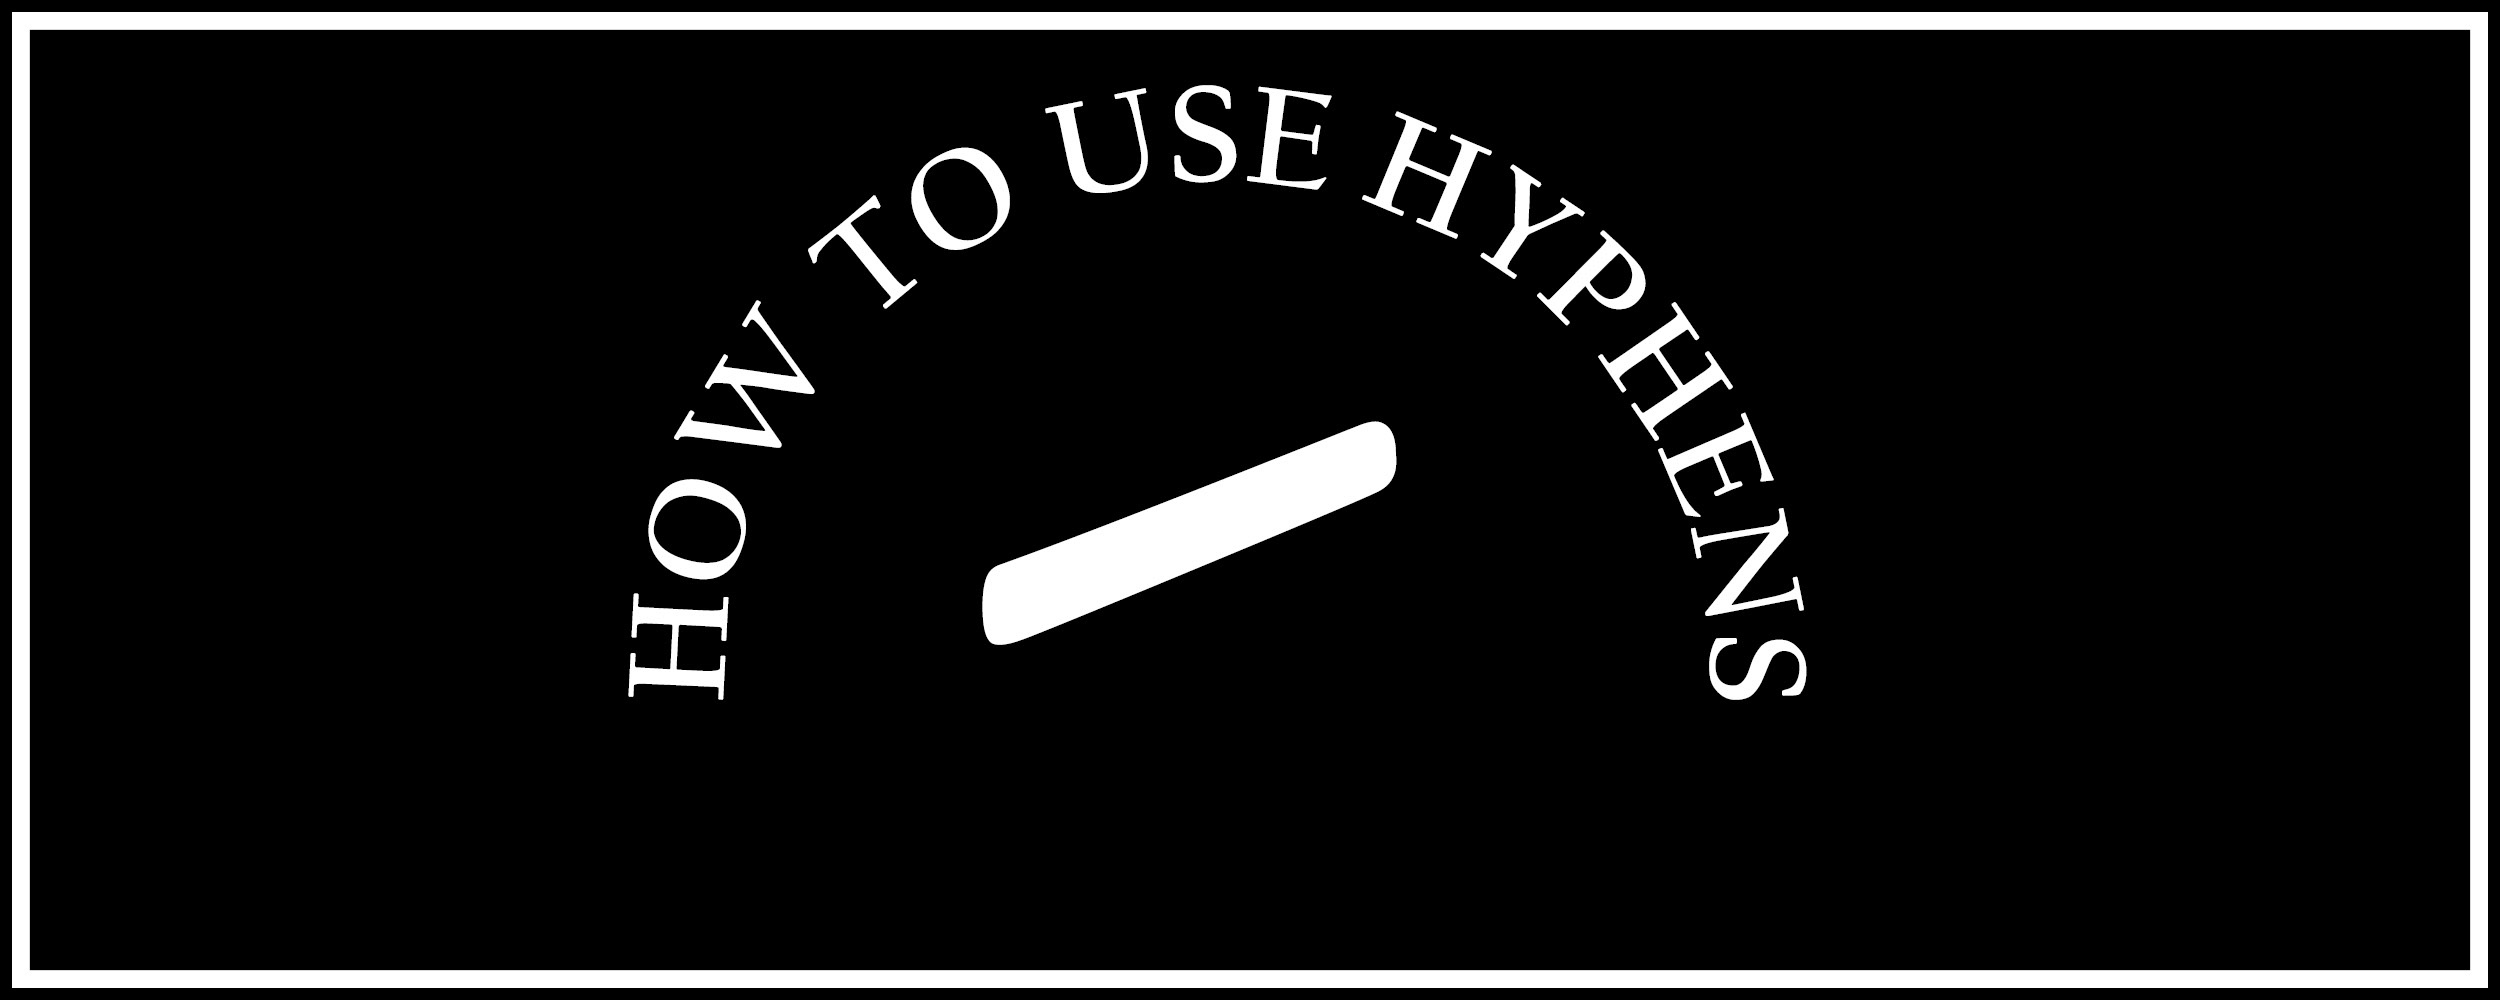 How to use hyphens the visual communication guy designing how to use hyphen banner biocorpaavc Choice Image